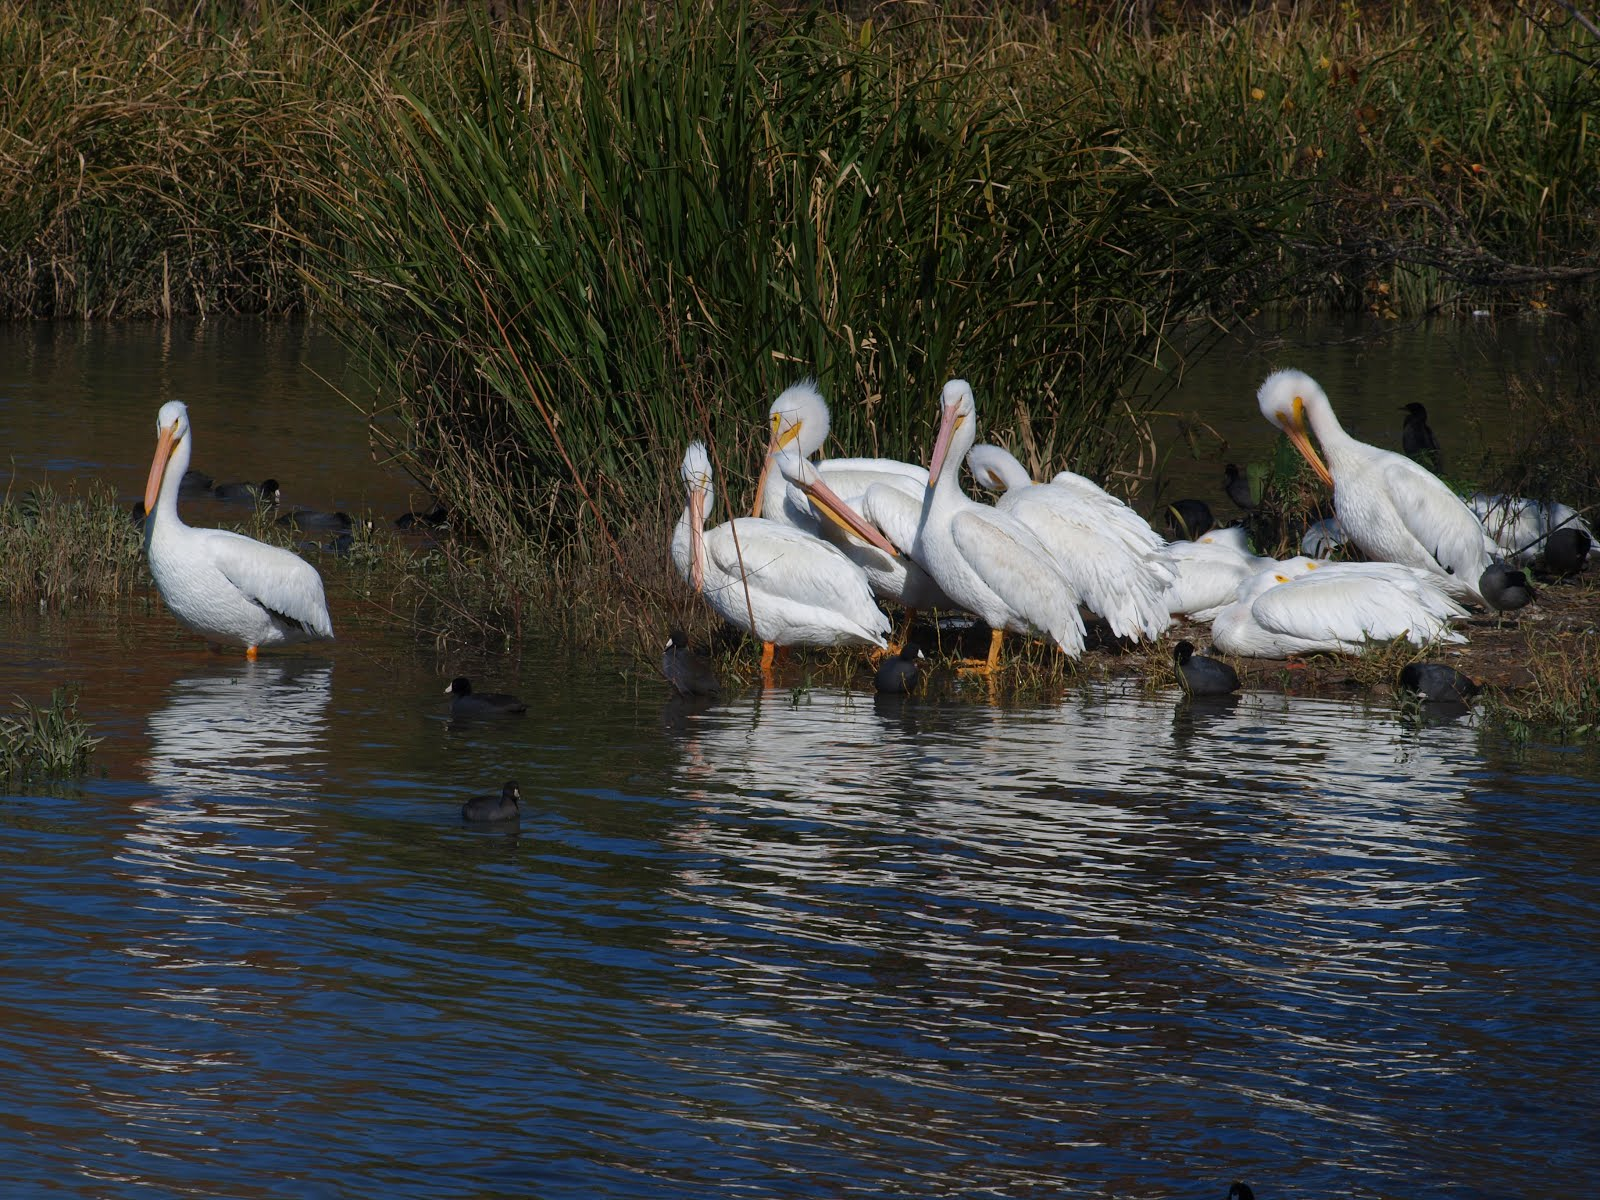 American White Pelicans and Coots